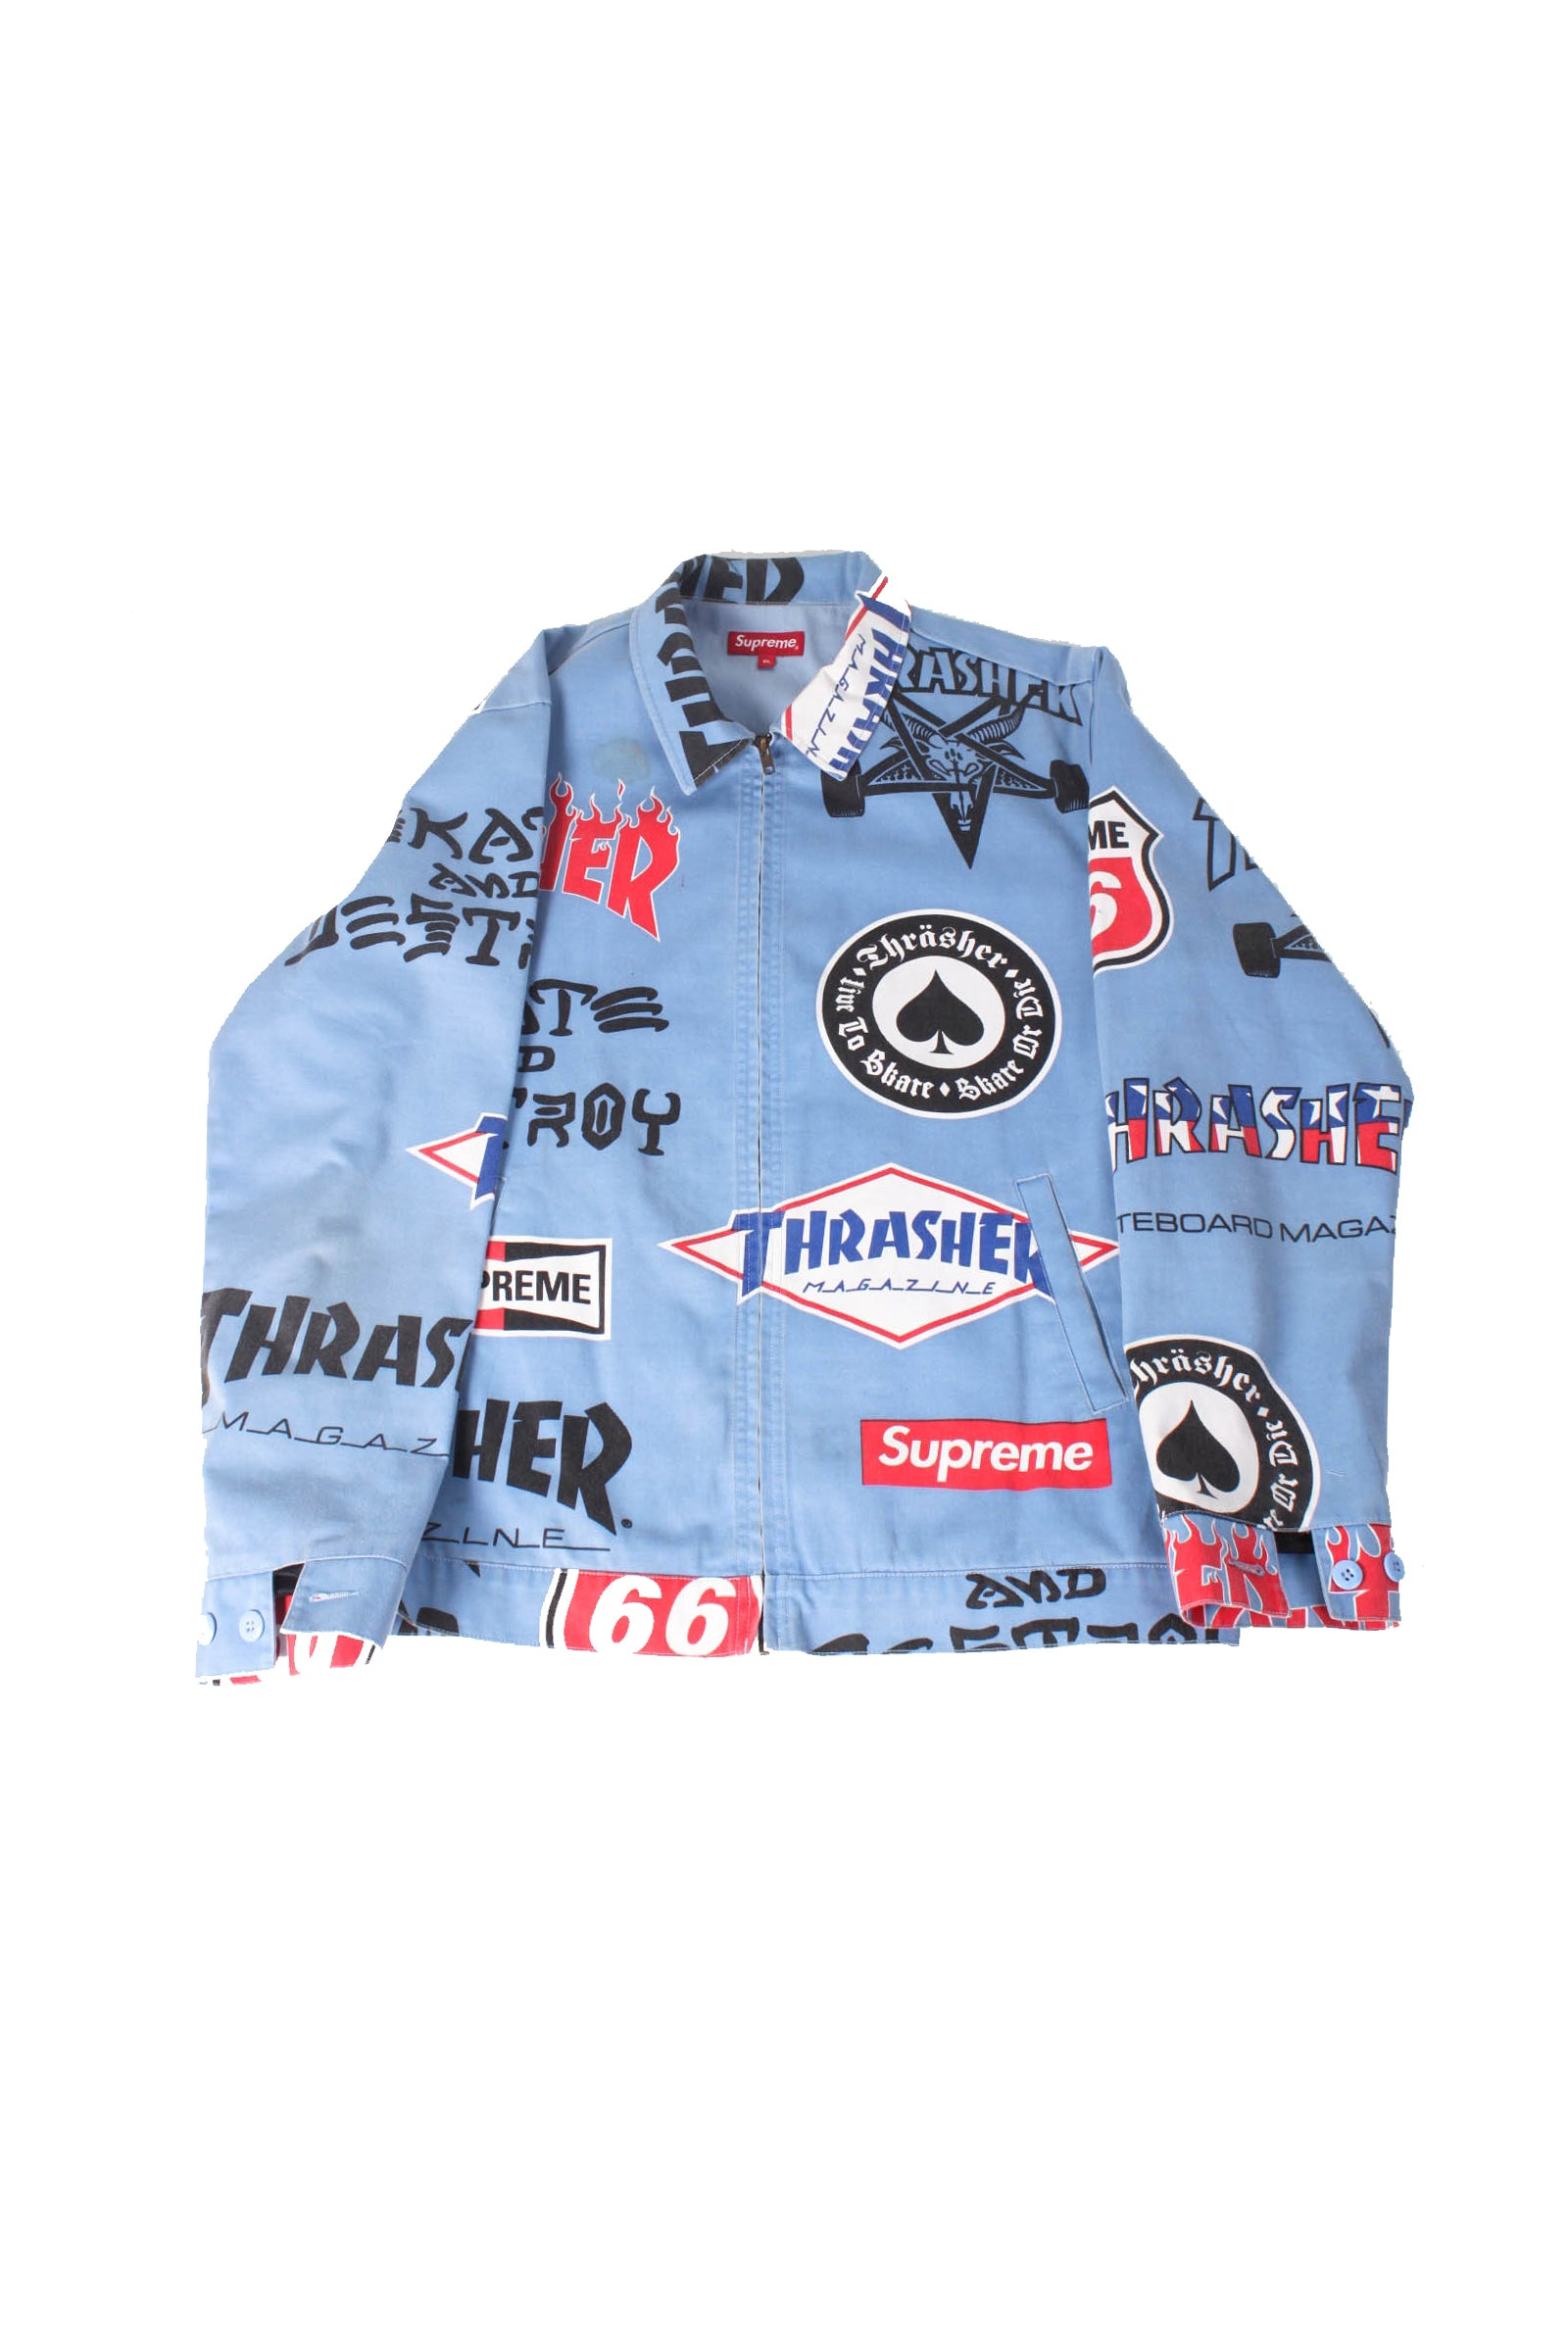 Vintage Supreme Blue Racing Jacket